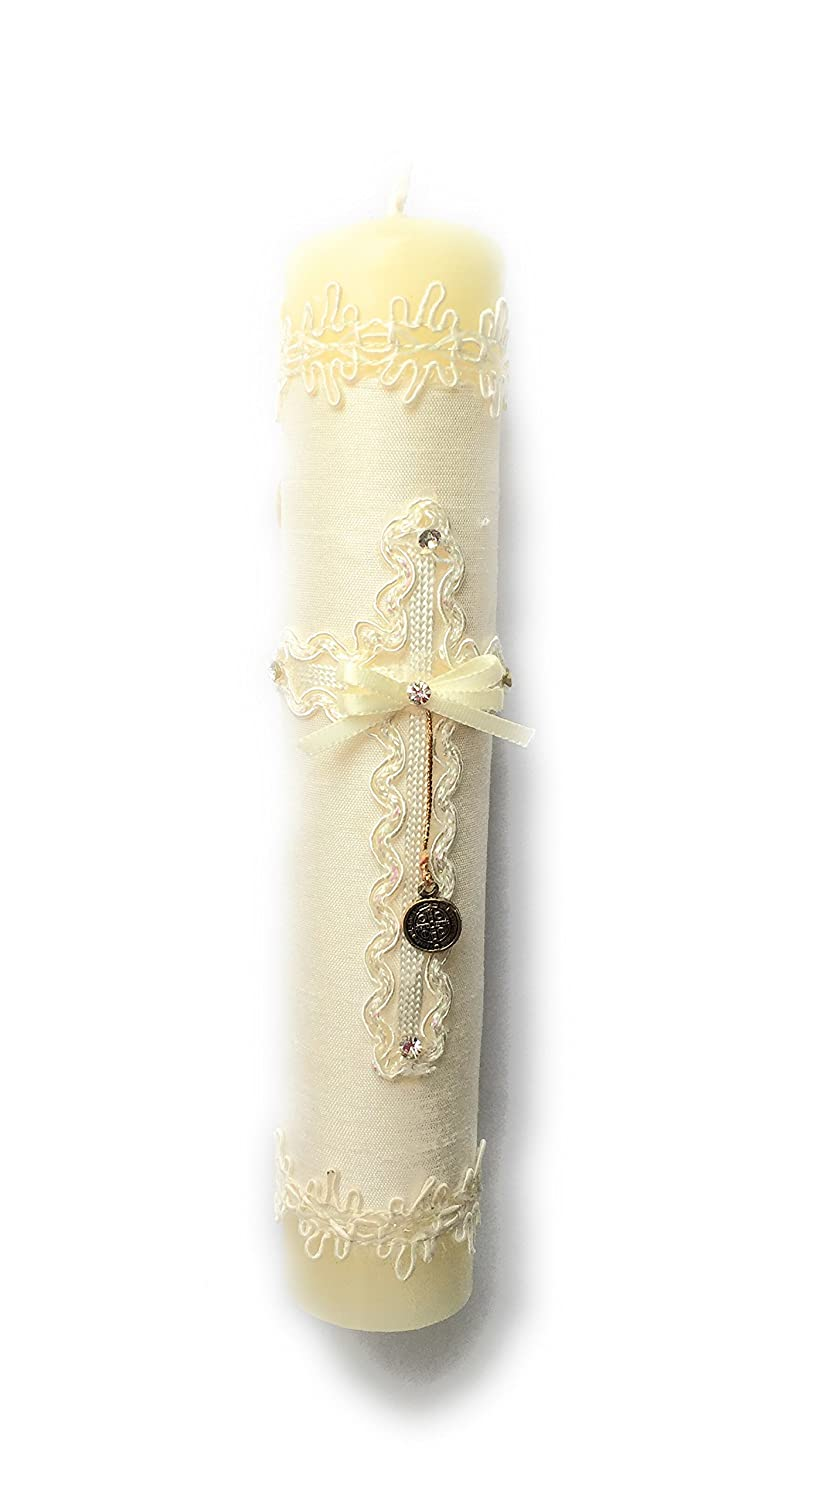 Amazon.com : Handmade Catholic Baptism Kit including Rosary, Towel, Candle and Shell Kit De Bautizo Religious Gift (Beige) : Baby